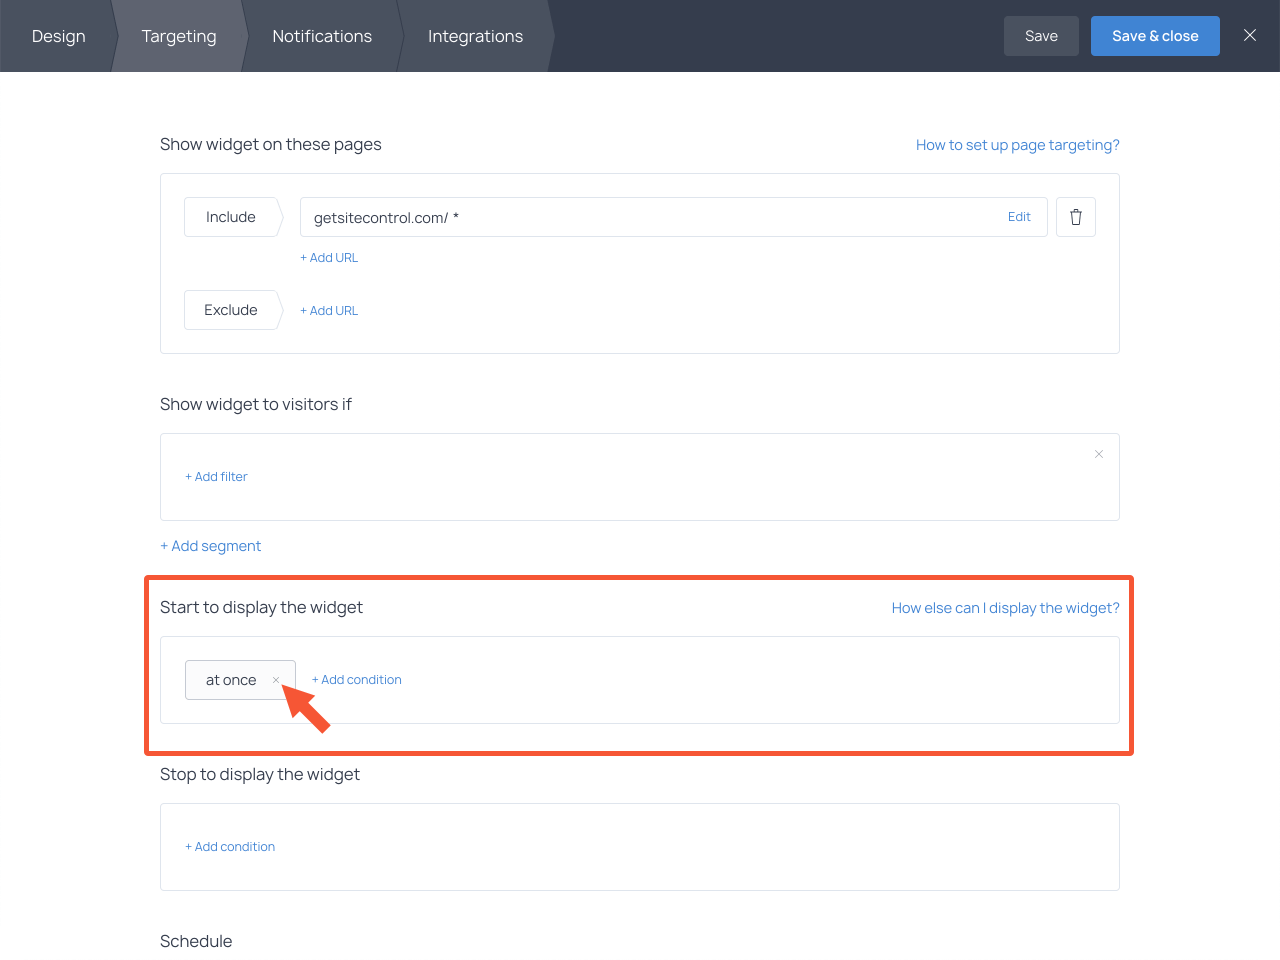 How to adjust targeting settings for a website survey form in Getsitecontrol